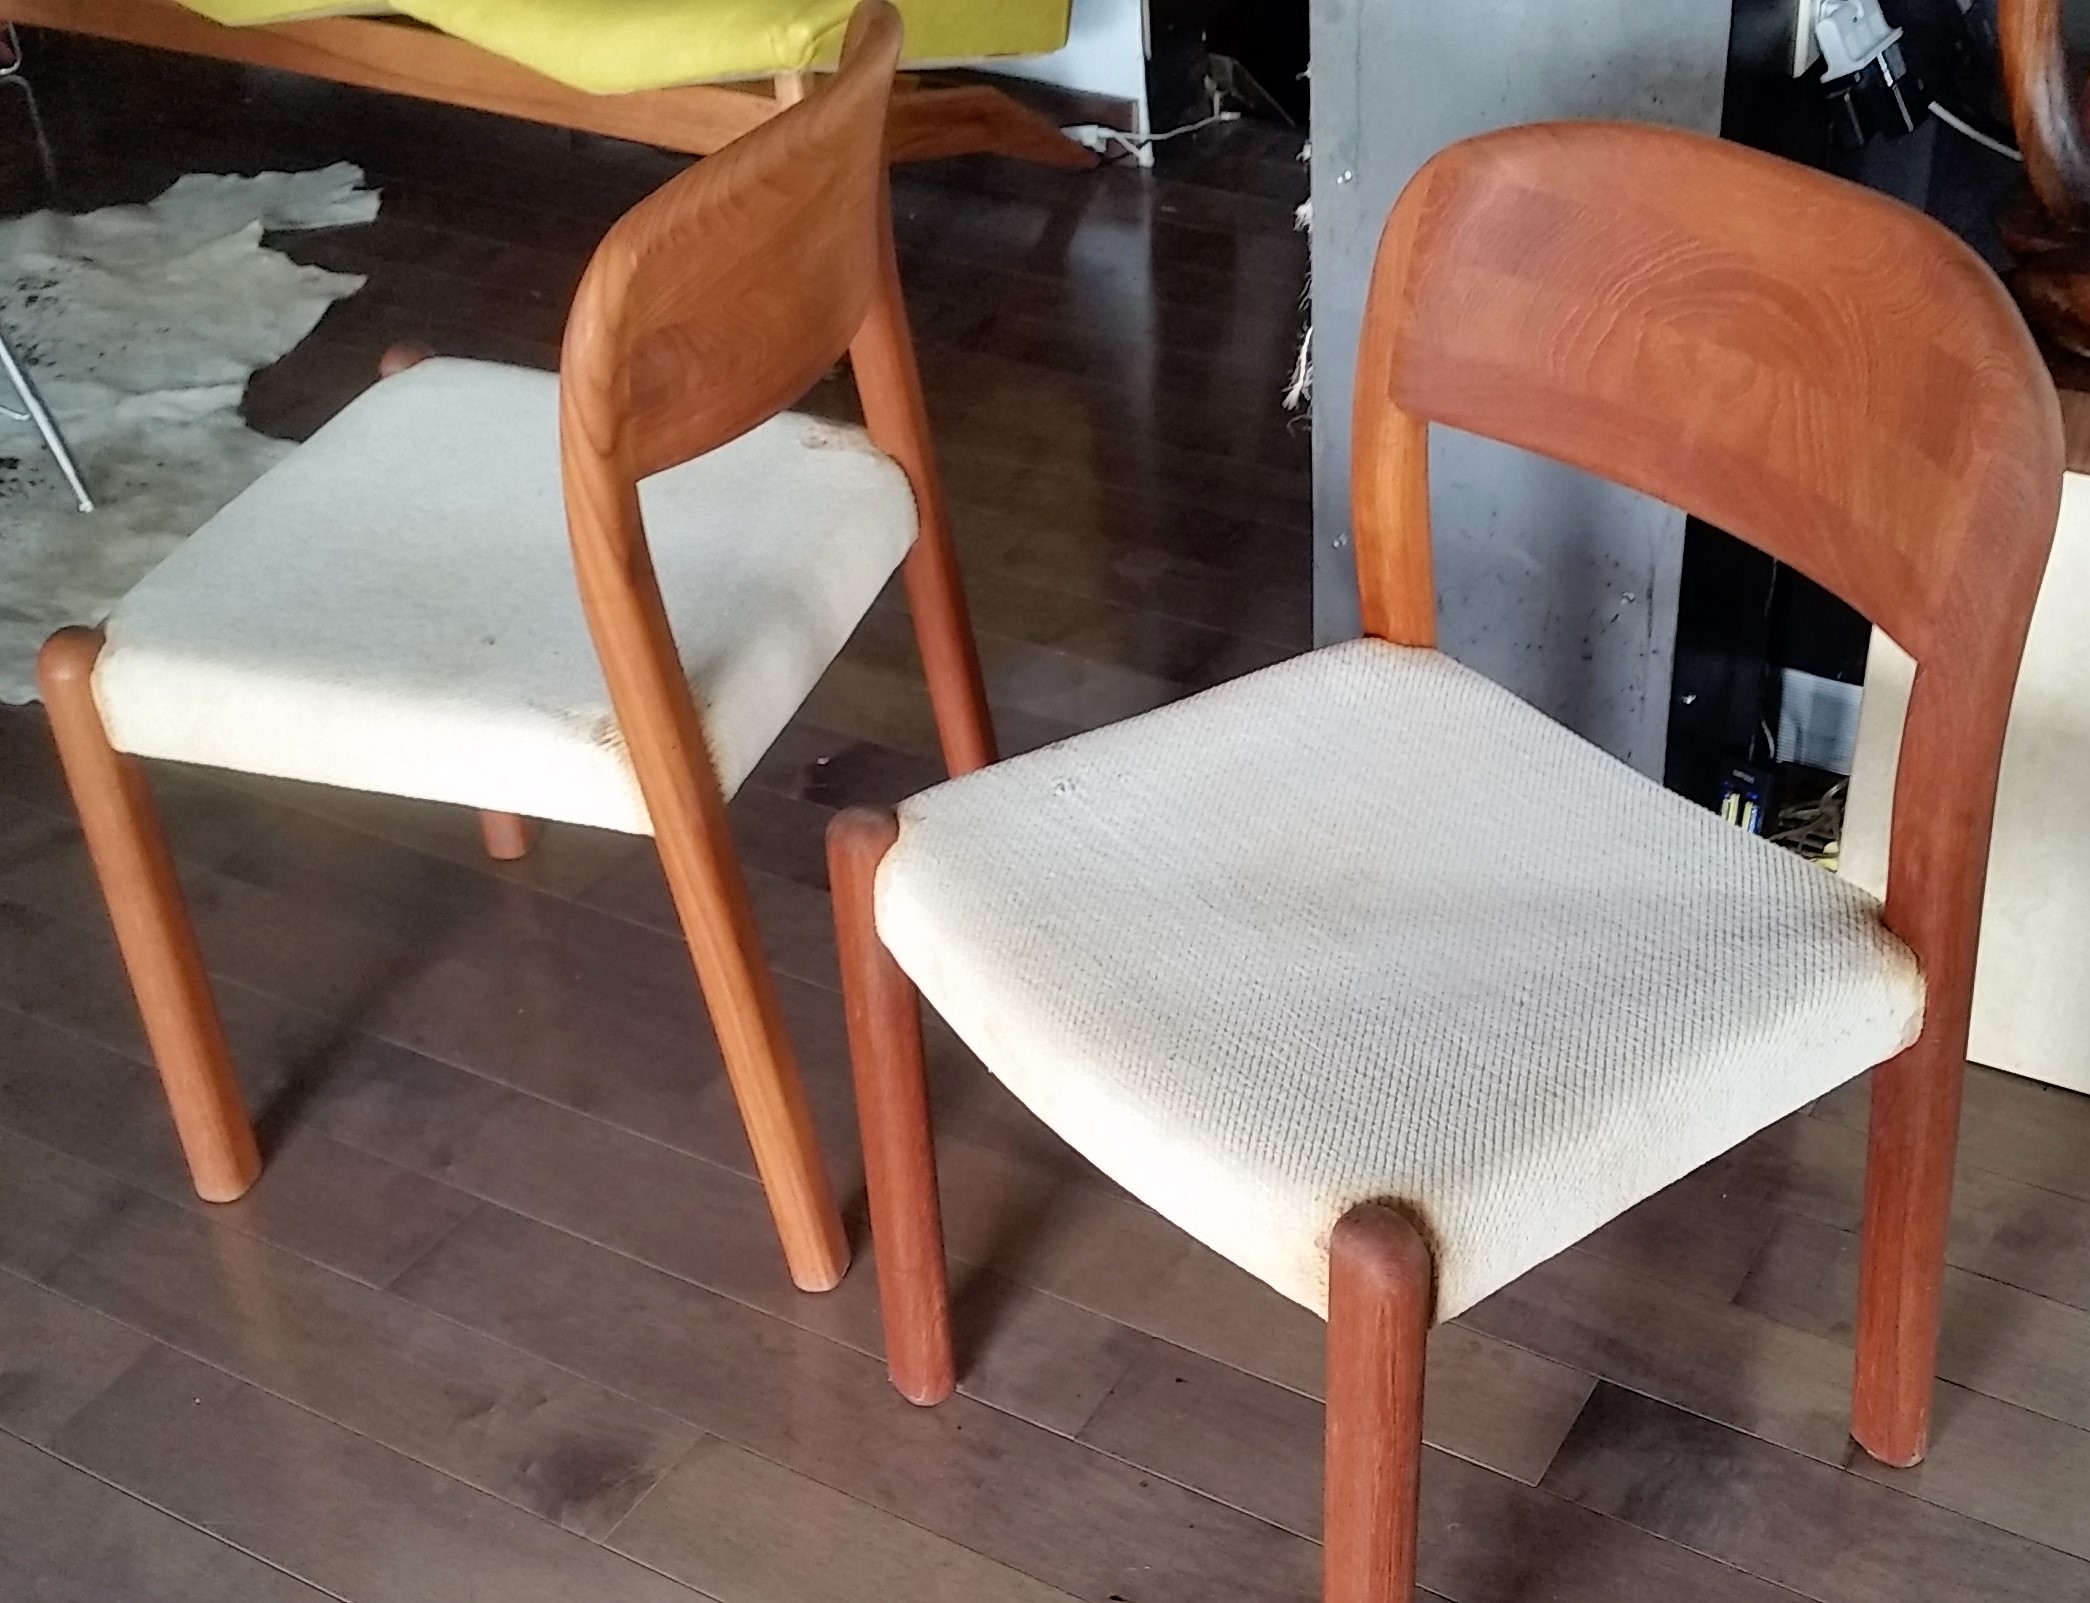 Surprising Teak Dining Chairs Mid Century Modern Please Help To Id Bralicious Painted Fabric Chair Ideas Braliciousco